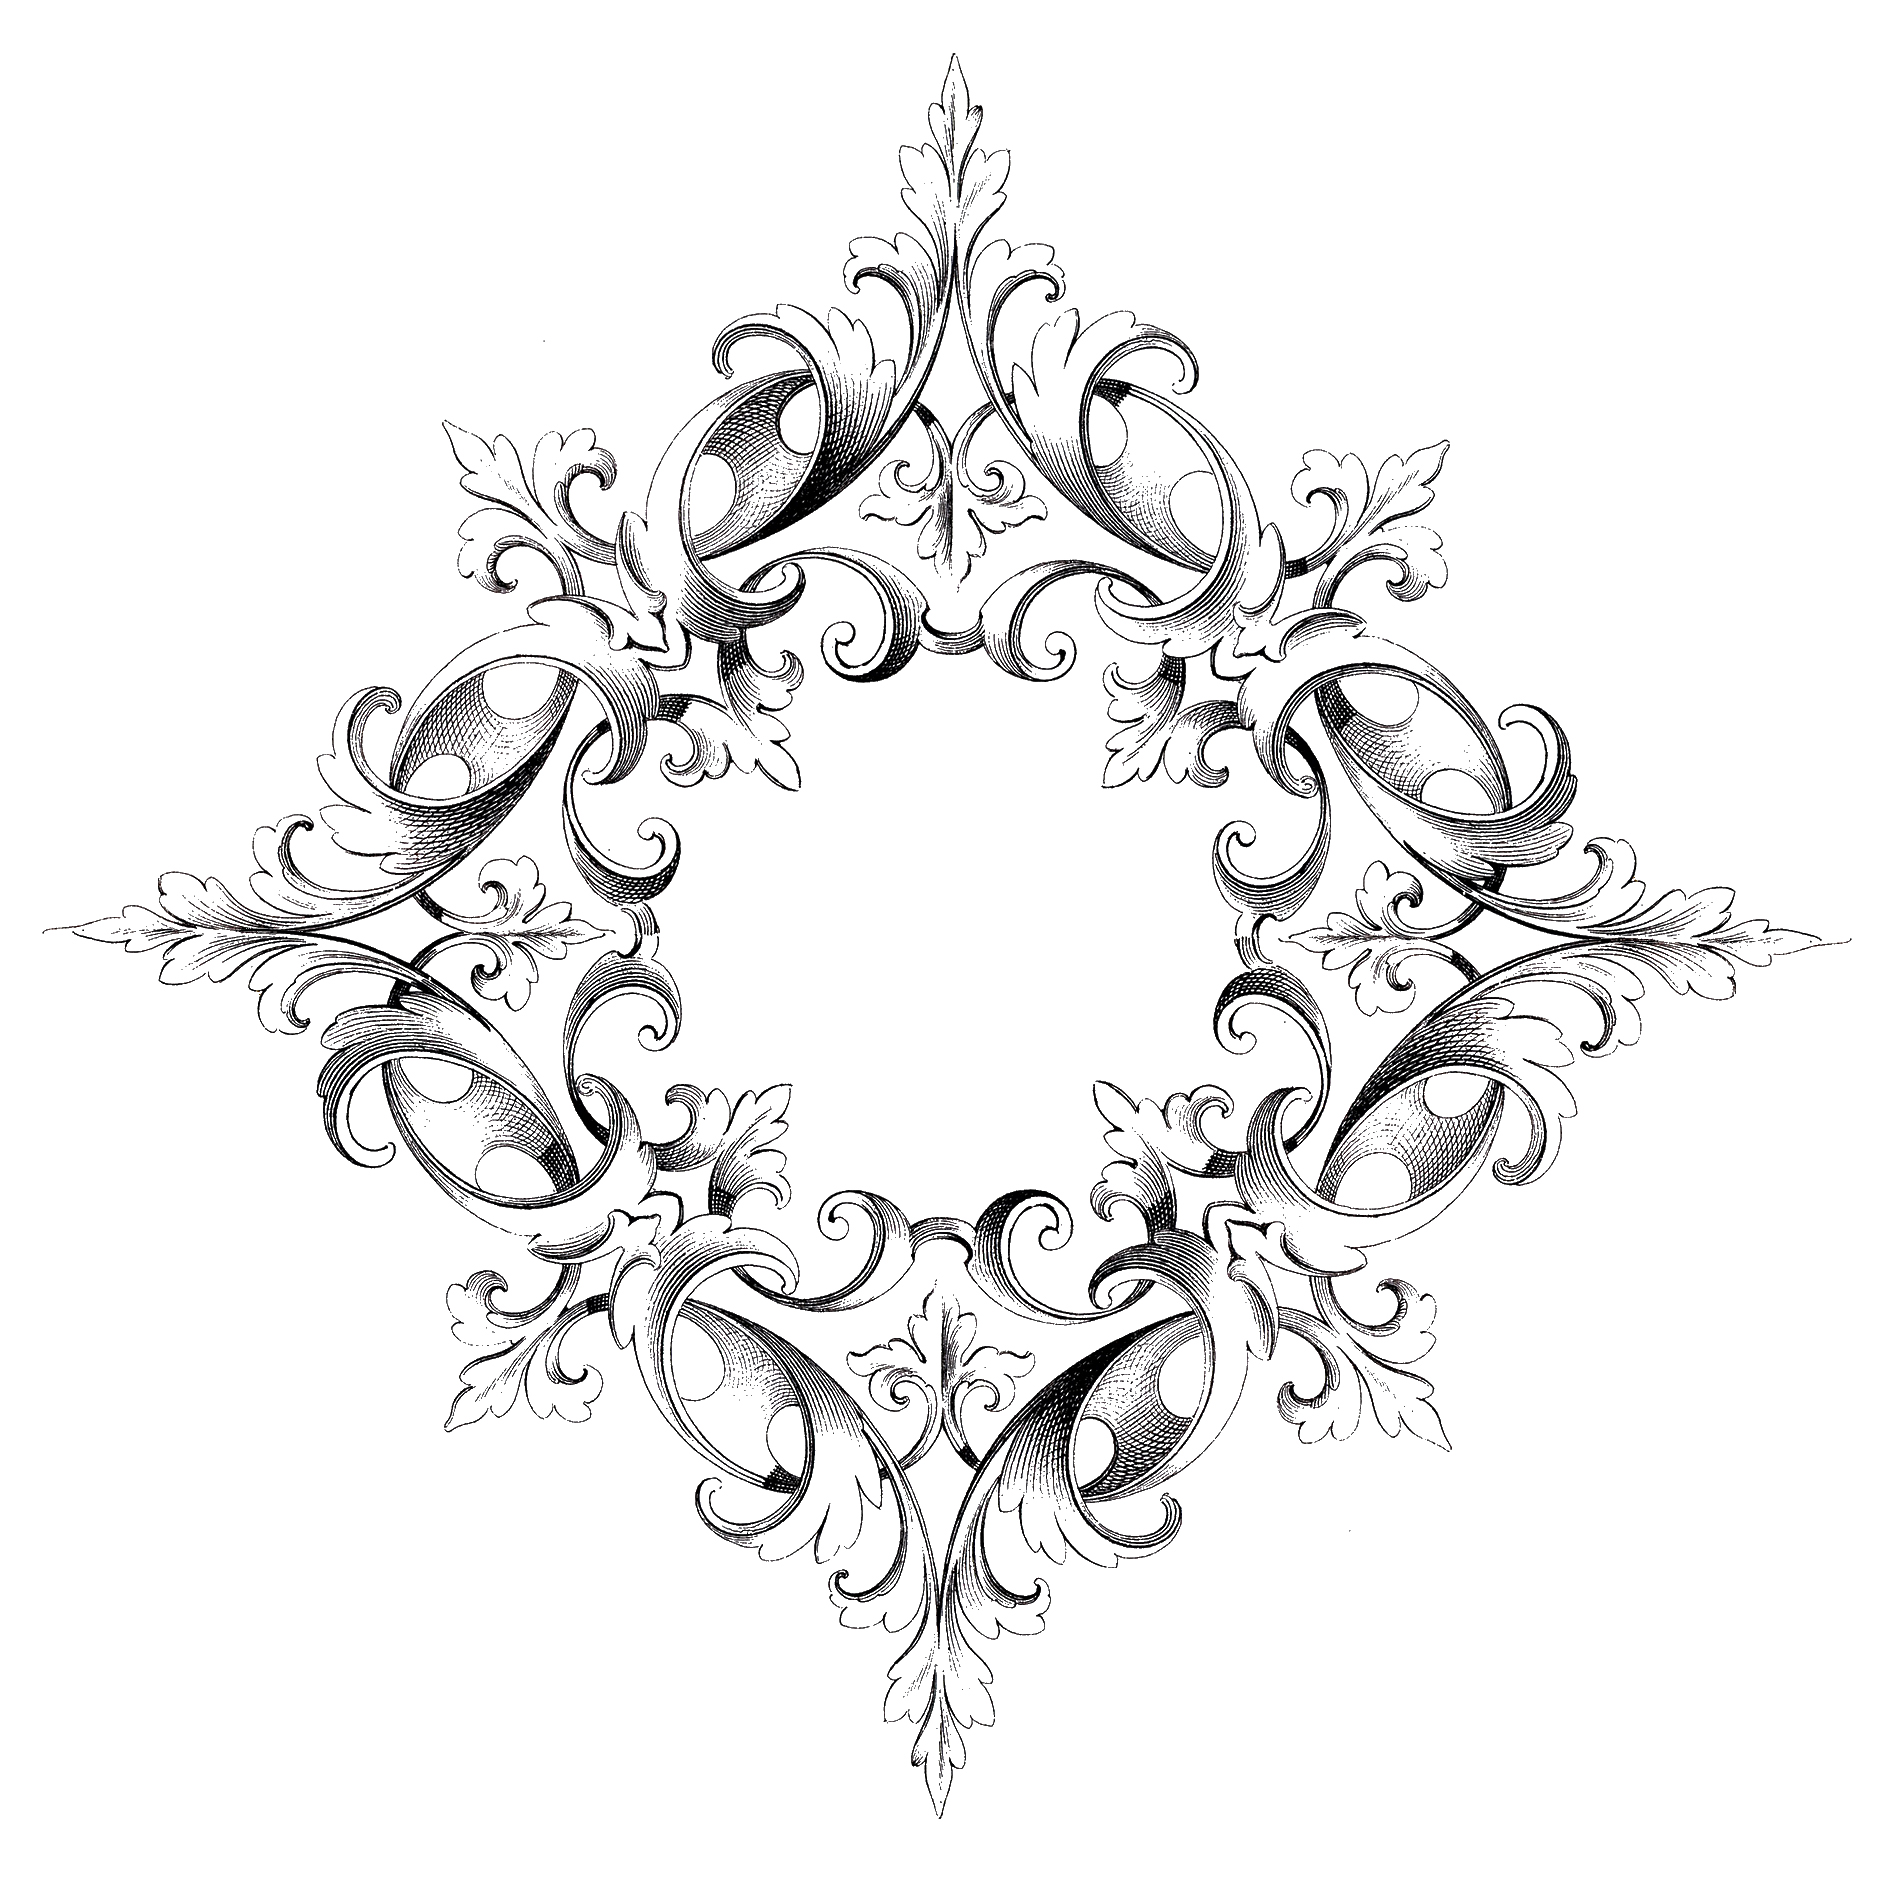 Spectacular Scroll Frame Image! - The Graphics Fairy